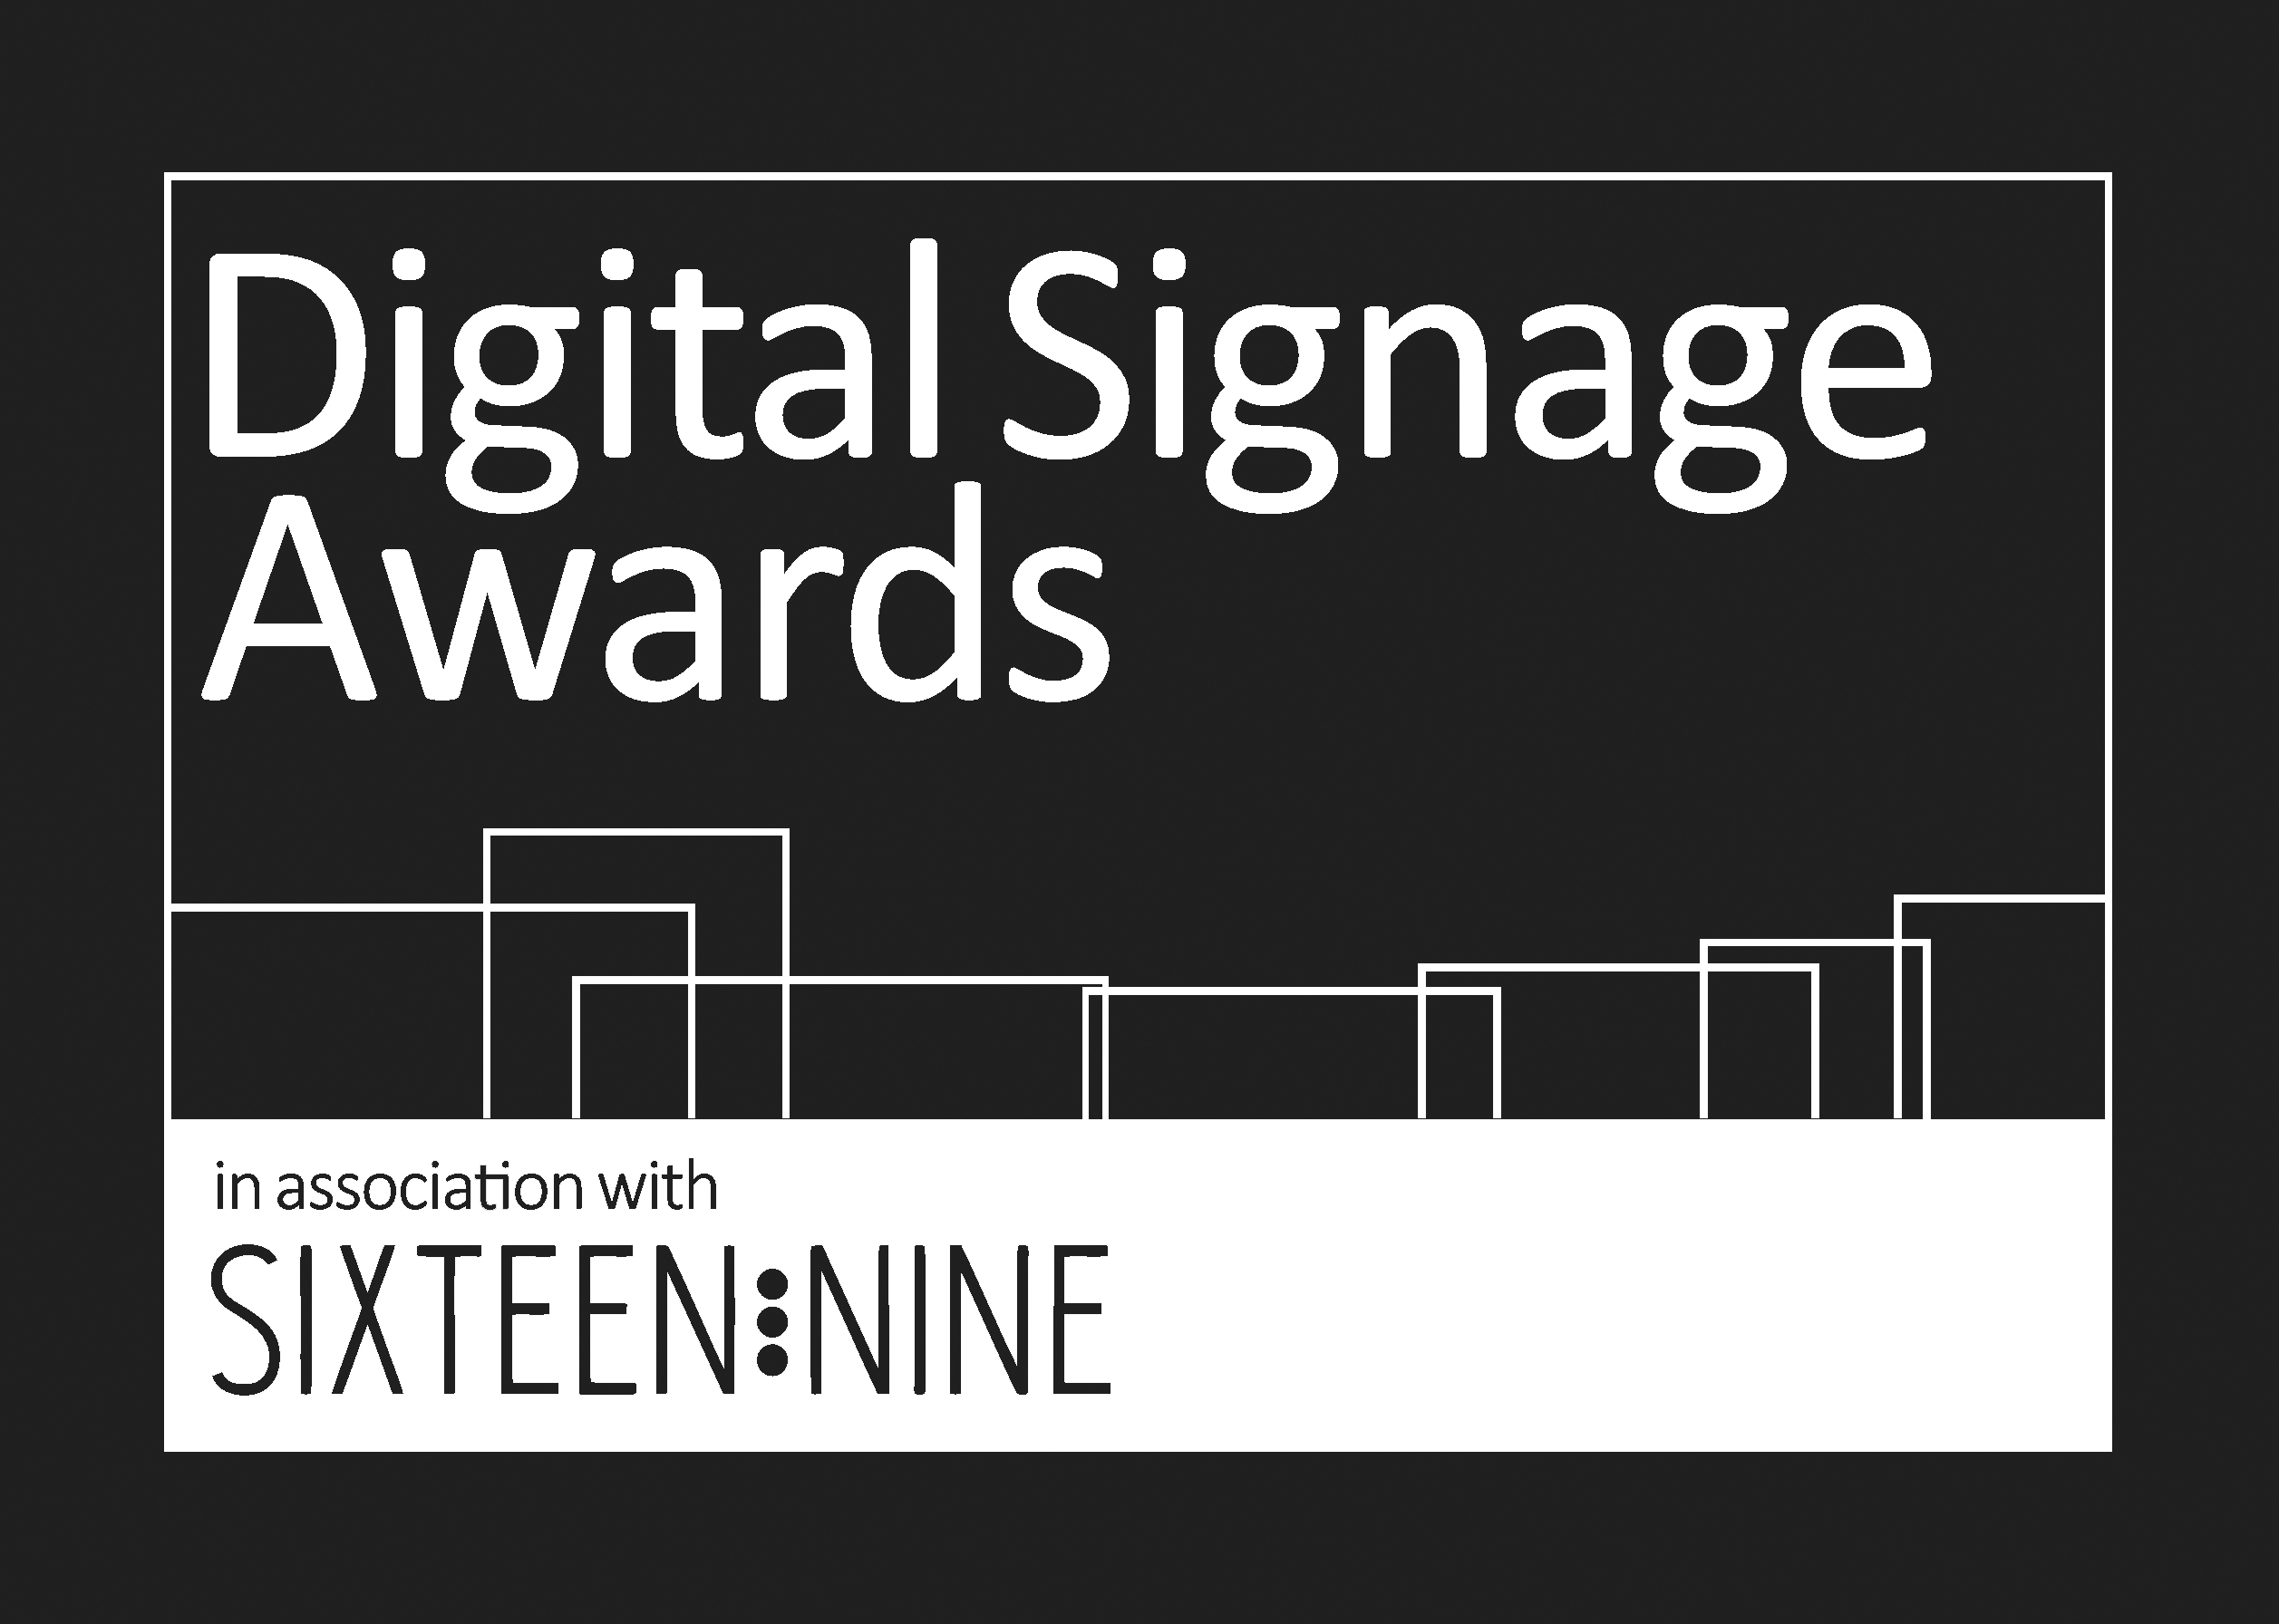 Gable - Digital Signage Awards